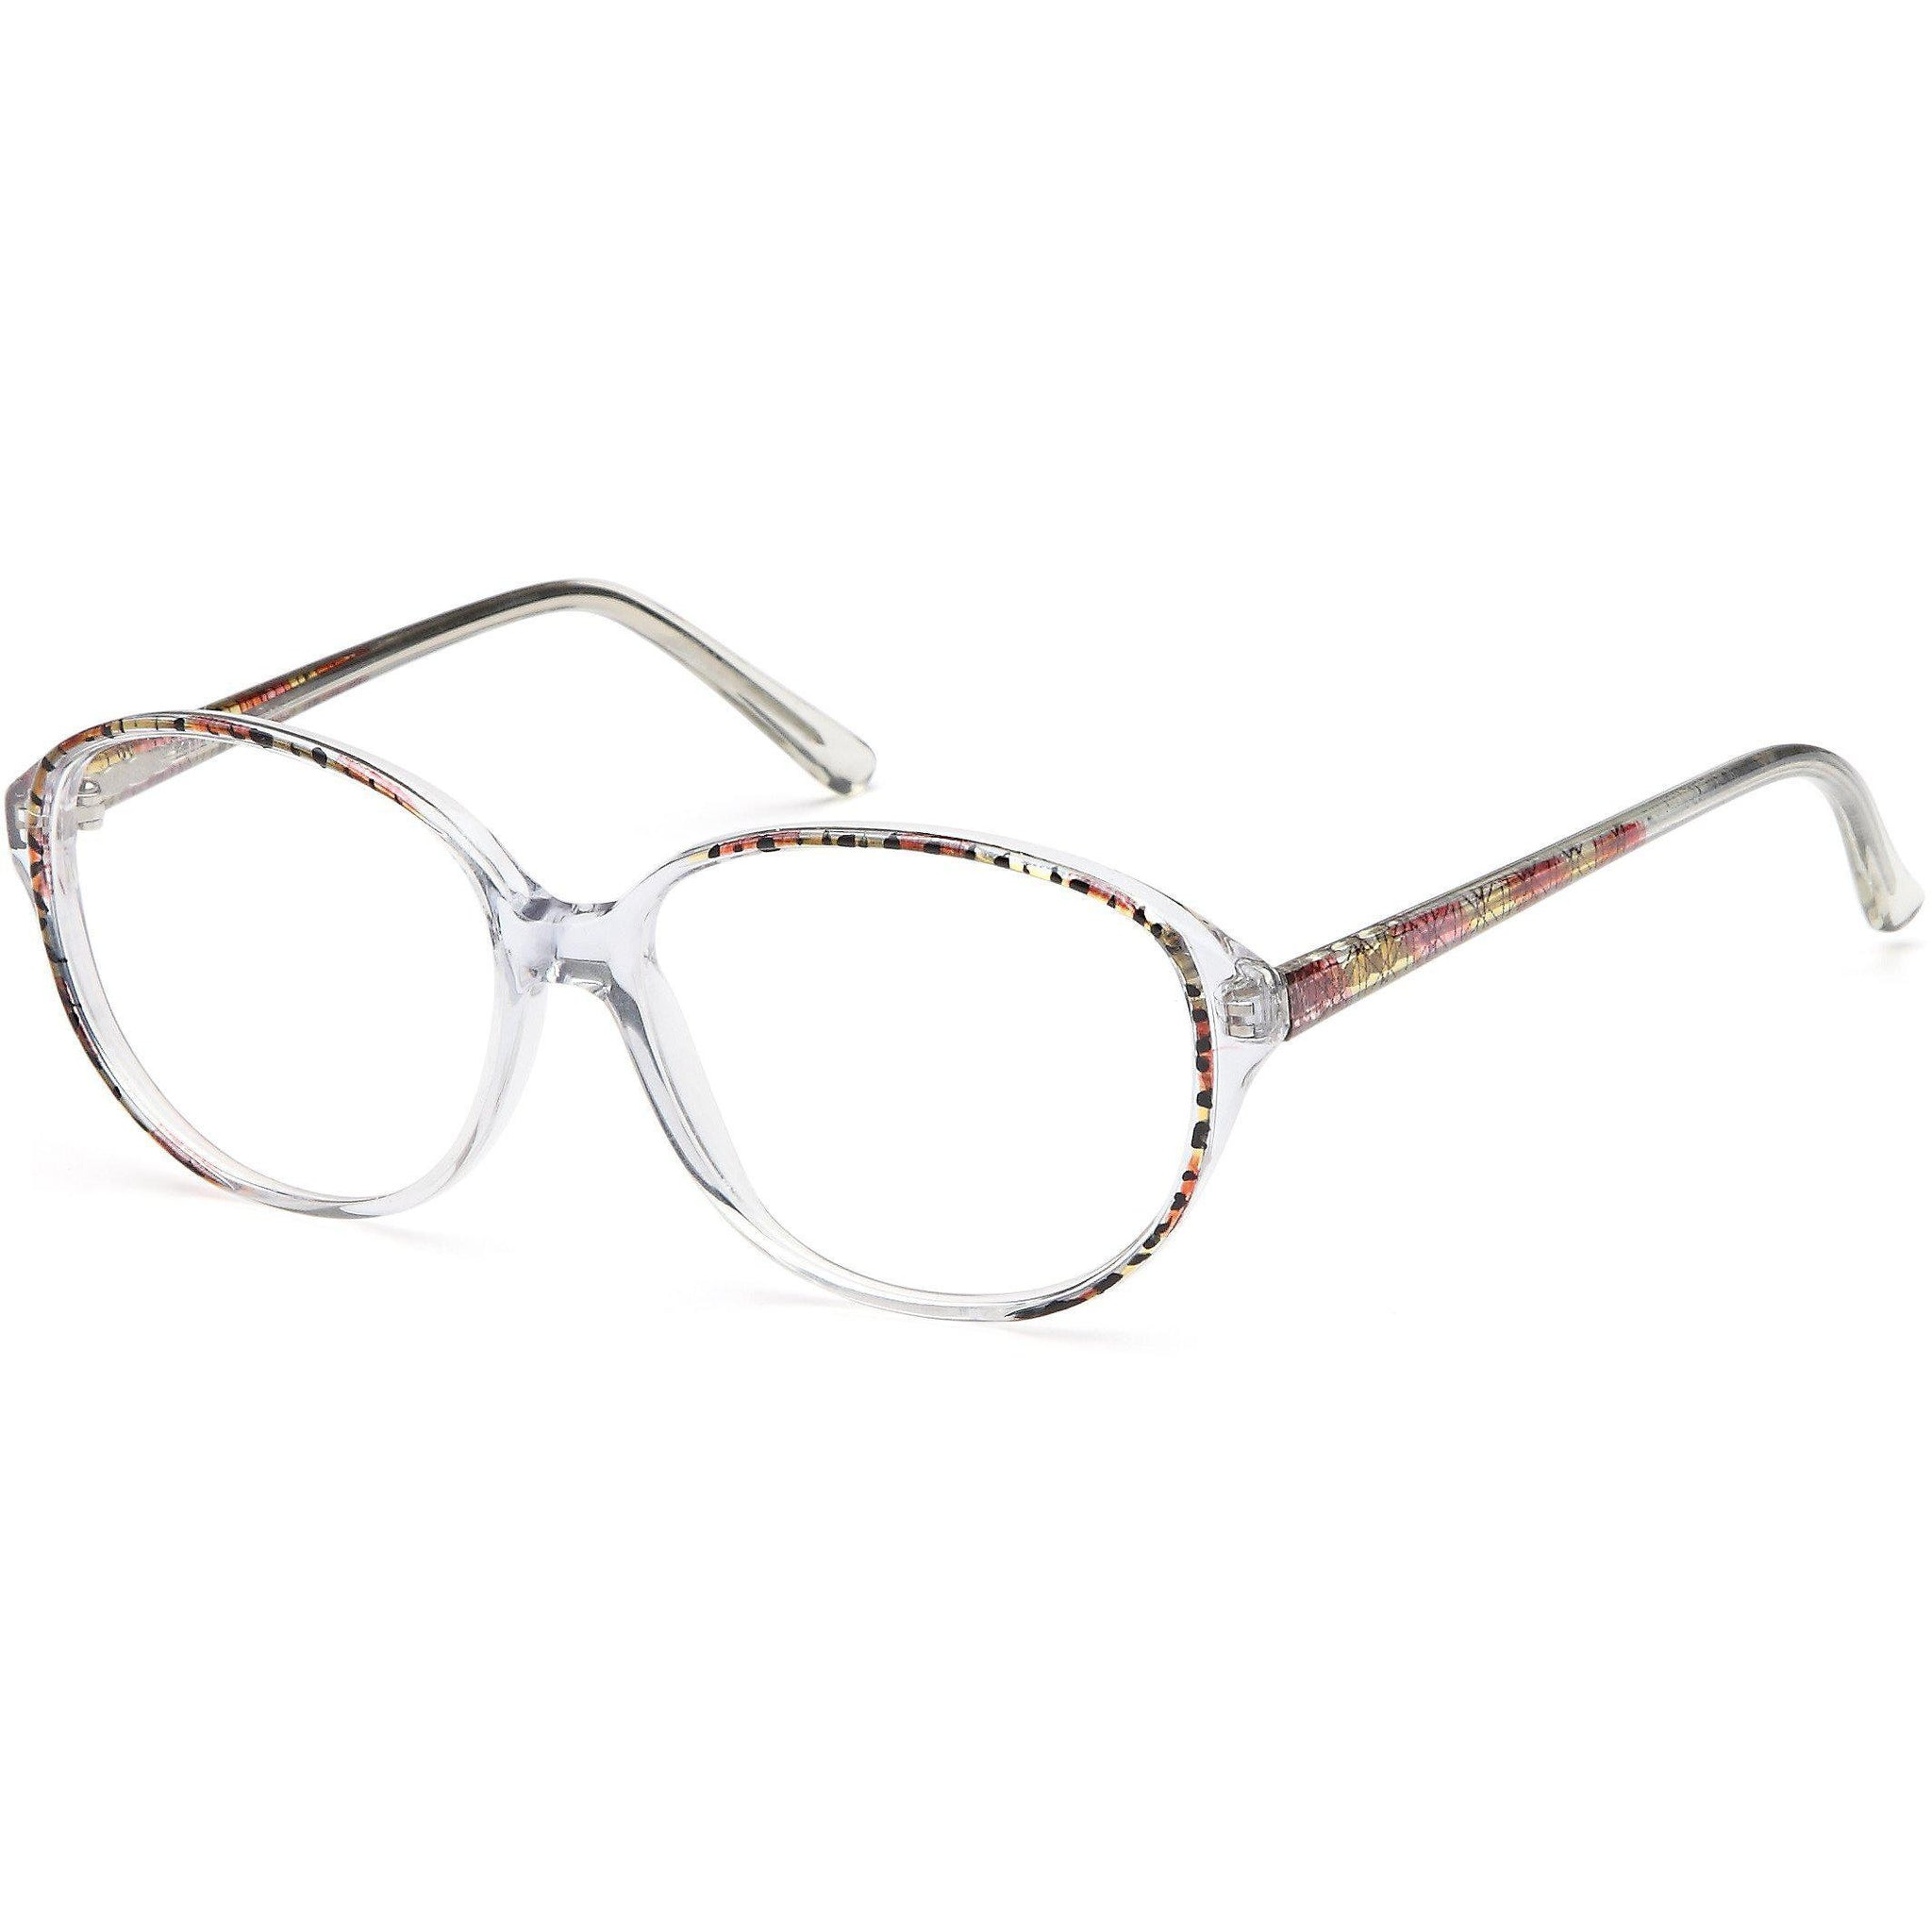 4U Prescription Glasses UL 92 Optical Eyeglasses Frame - timetoshade